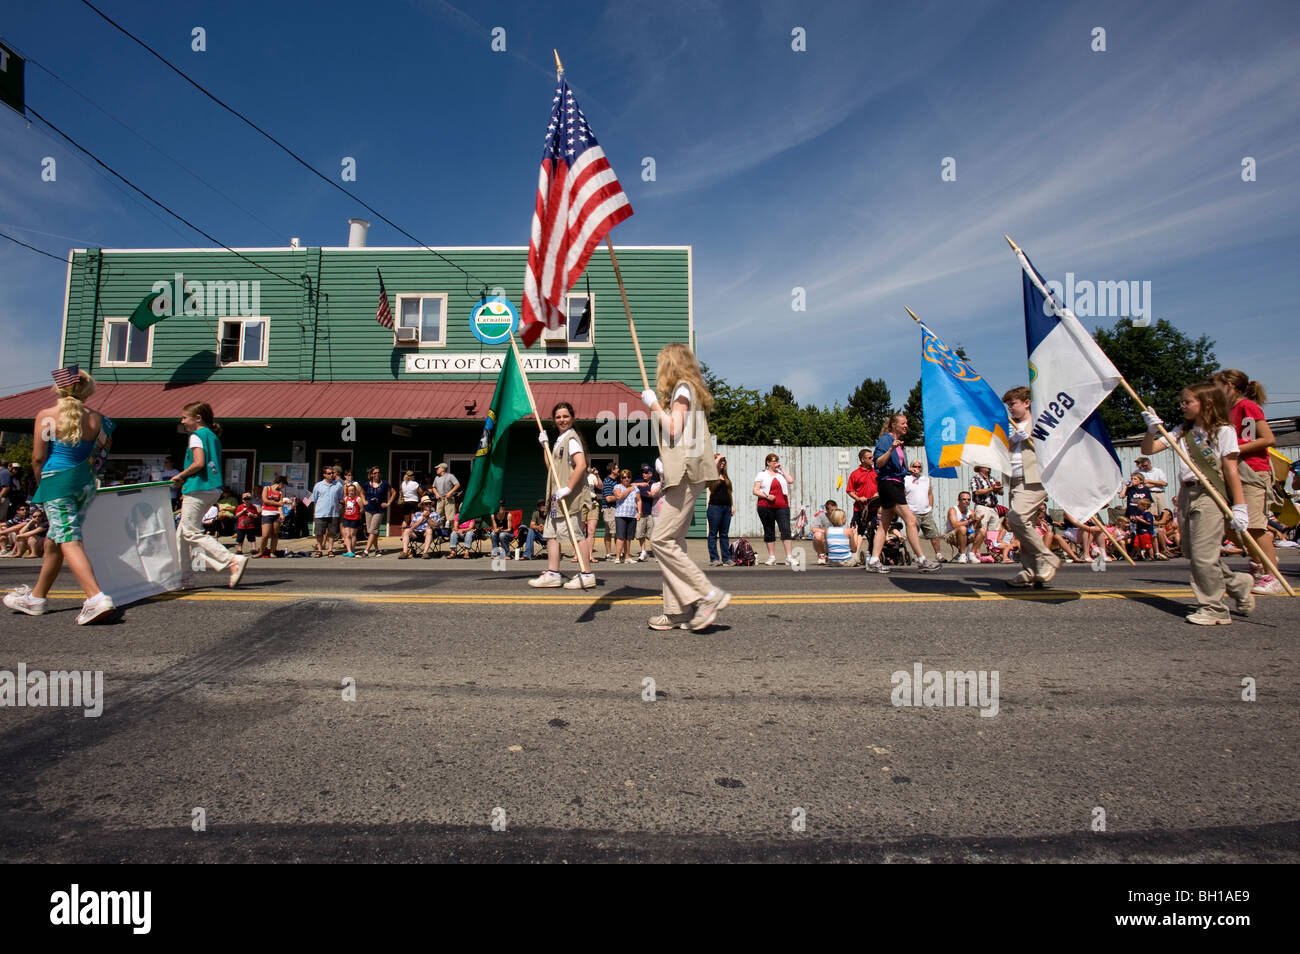 Girl Scouts participating in the Fourth of July parade. - Stock Image